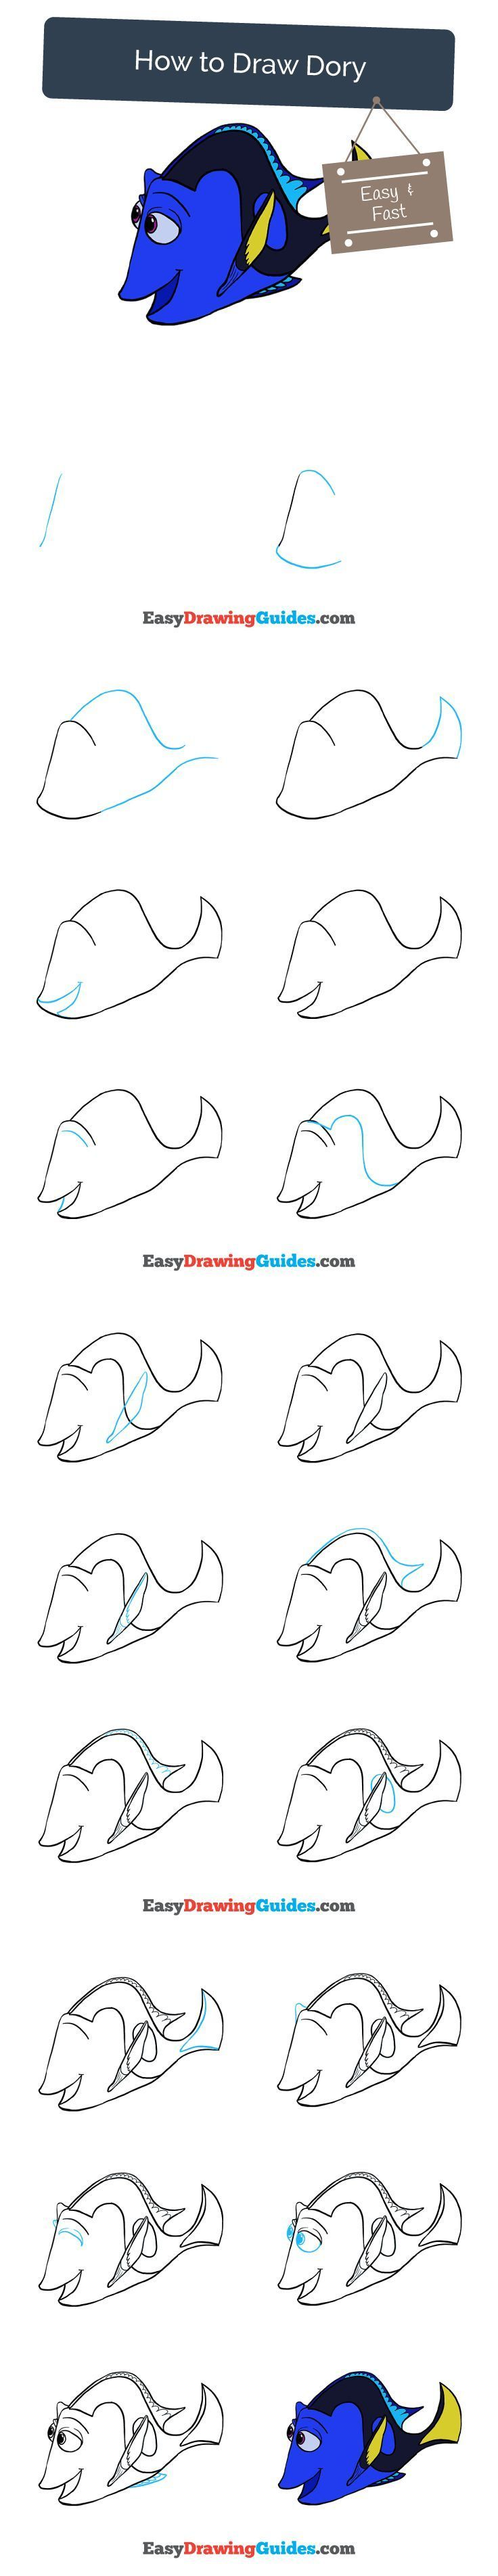 Learn How to Draw Dory from Finding Dory: Easy Step-by-Step Drawing Tutorial for Kids and Beginners. #dory #findingdory #drawing #tutorial. See the full tutorial at https://easydrawingguides.com/how-to-draw-dory/